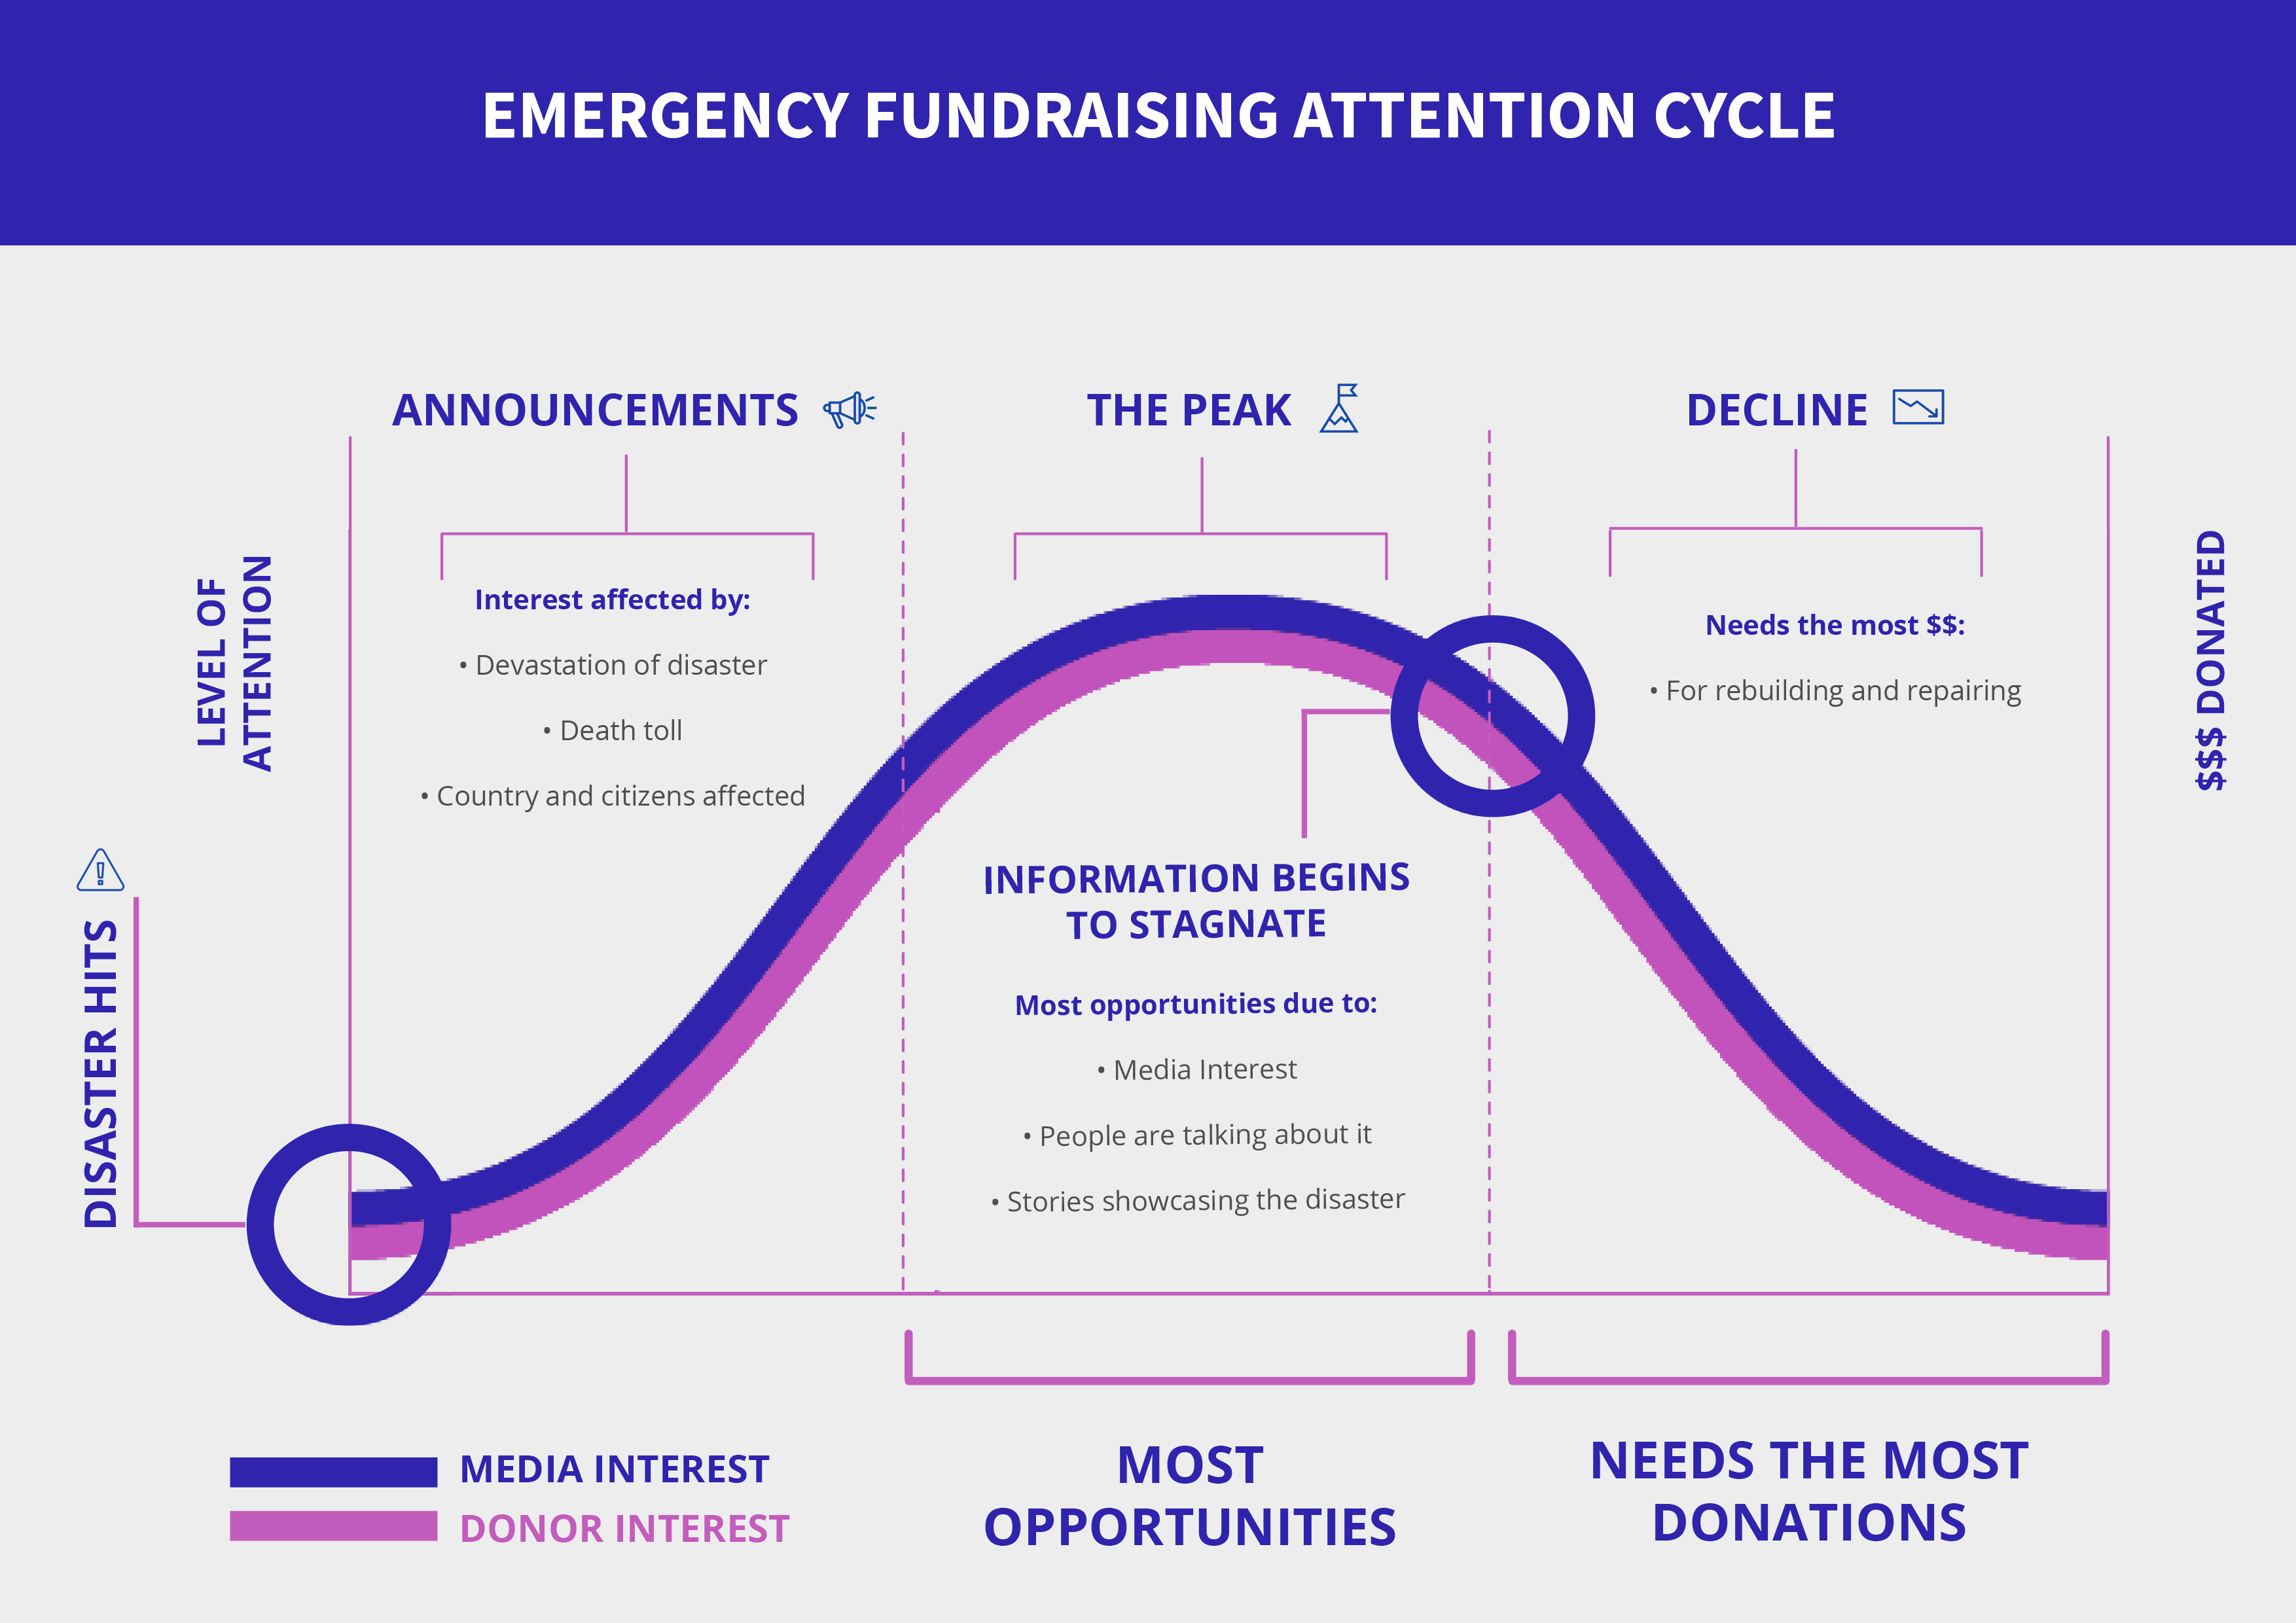 Source: ntegrity website. Emergency Fundraising Attention Cycle.